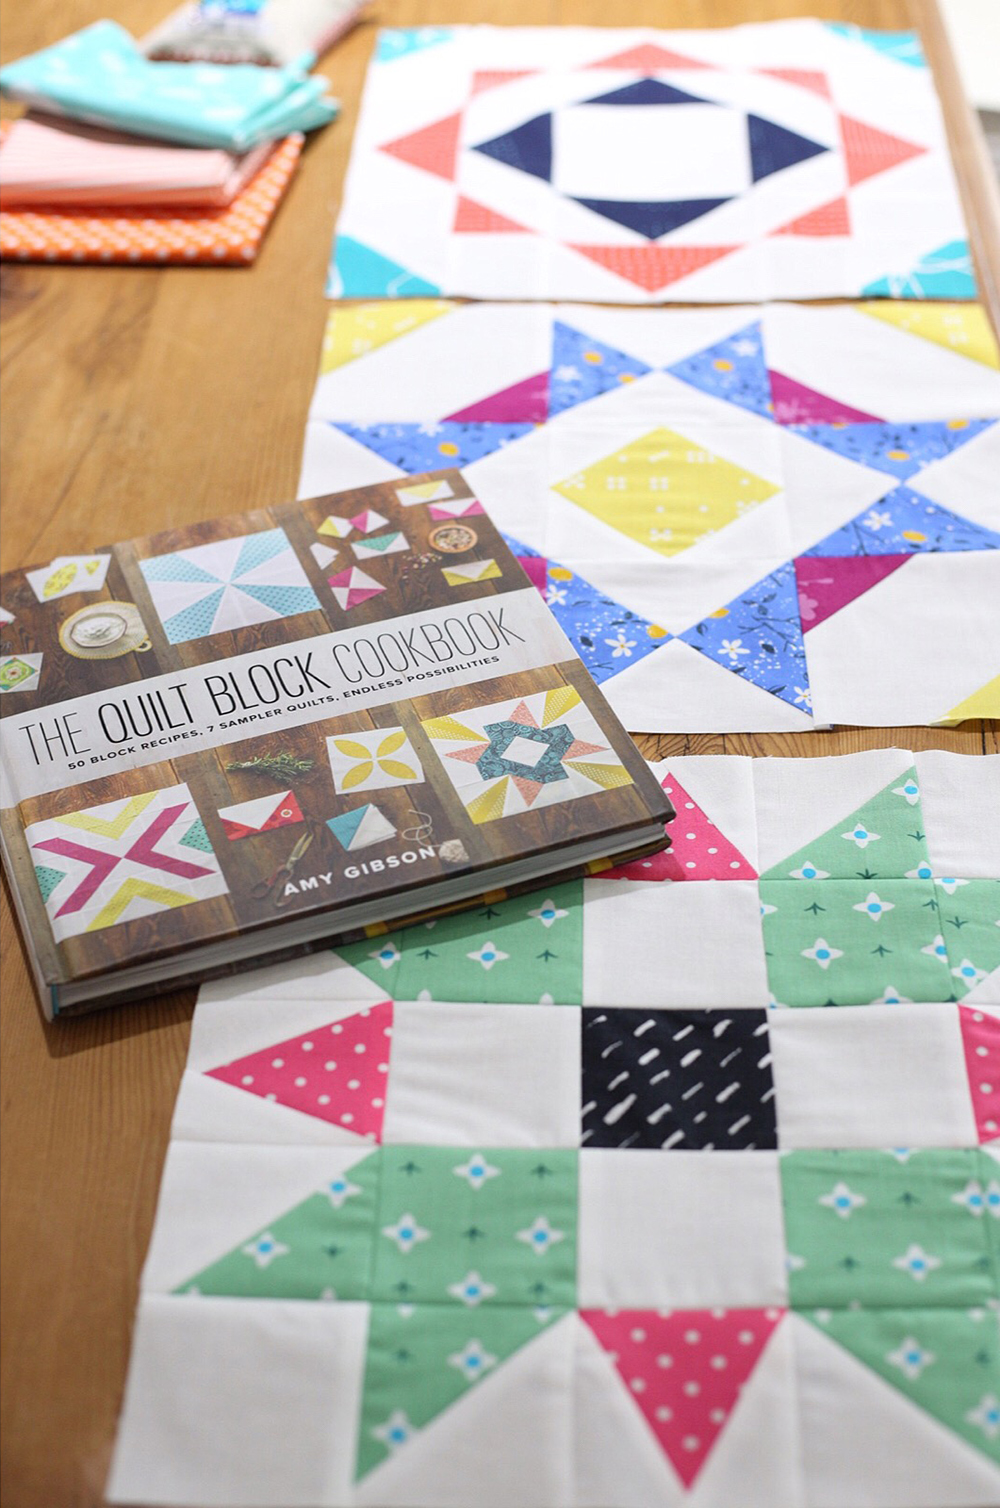 The Quilt Block Cookbook by Amy Gibson : Fresh Lemons Quilts